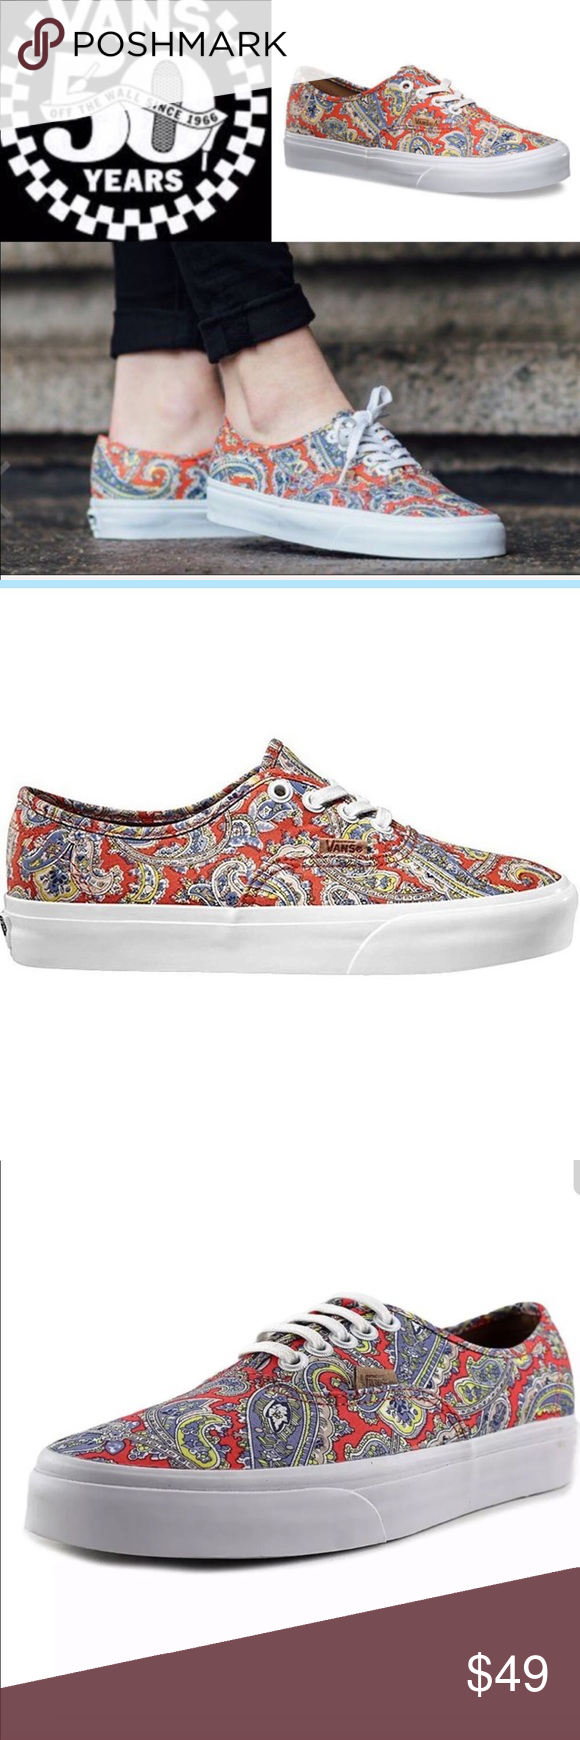 15d56667465fe2 Brand 🆕 Boho Paisley HTF Authentic Vans Sneakers Brand New in Box HTF Vans  paisley cayenne authentic skate shoe Traditional canvas colorful upper in  burnt ...